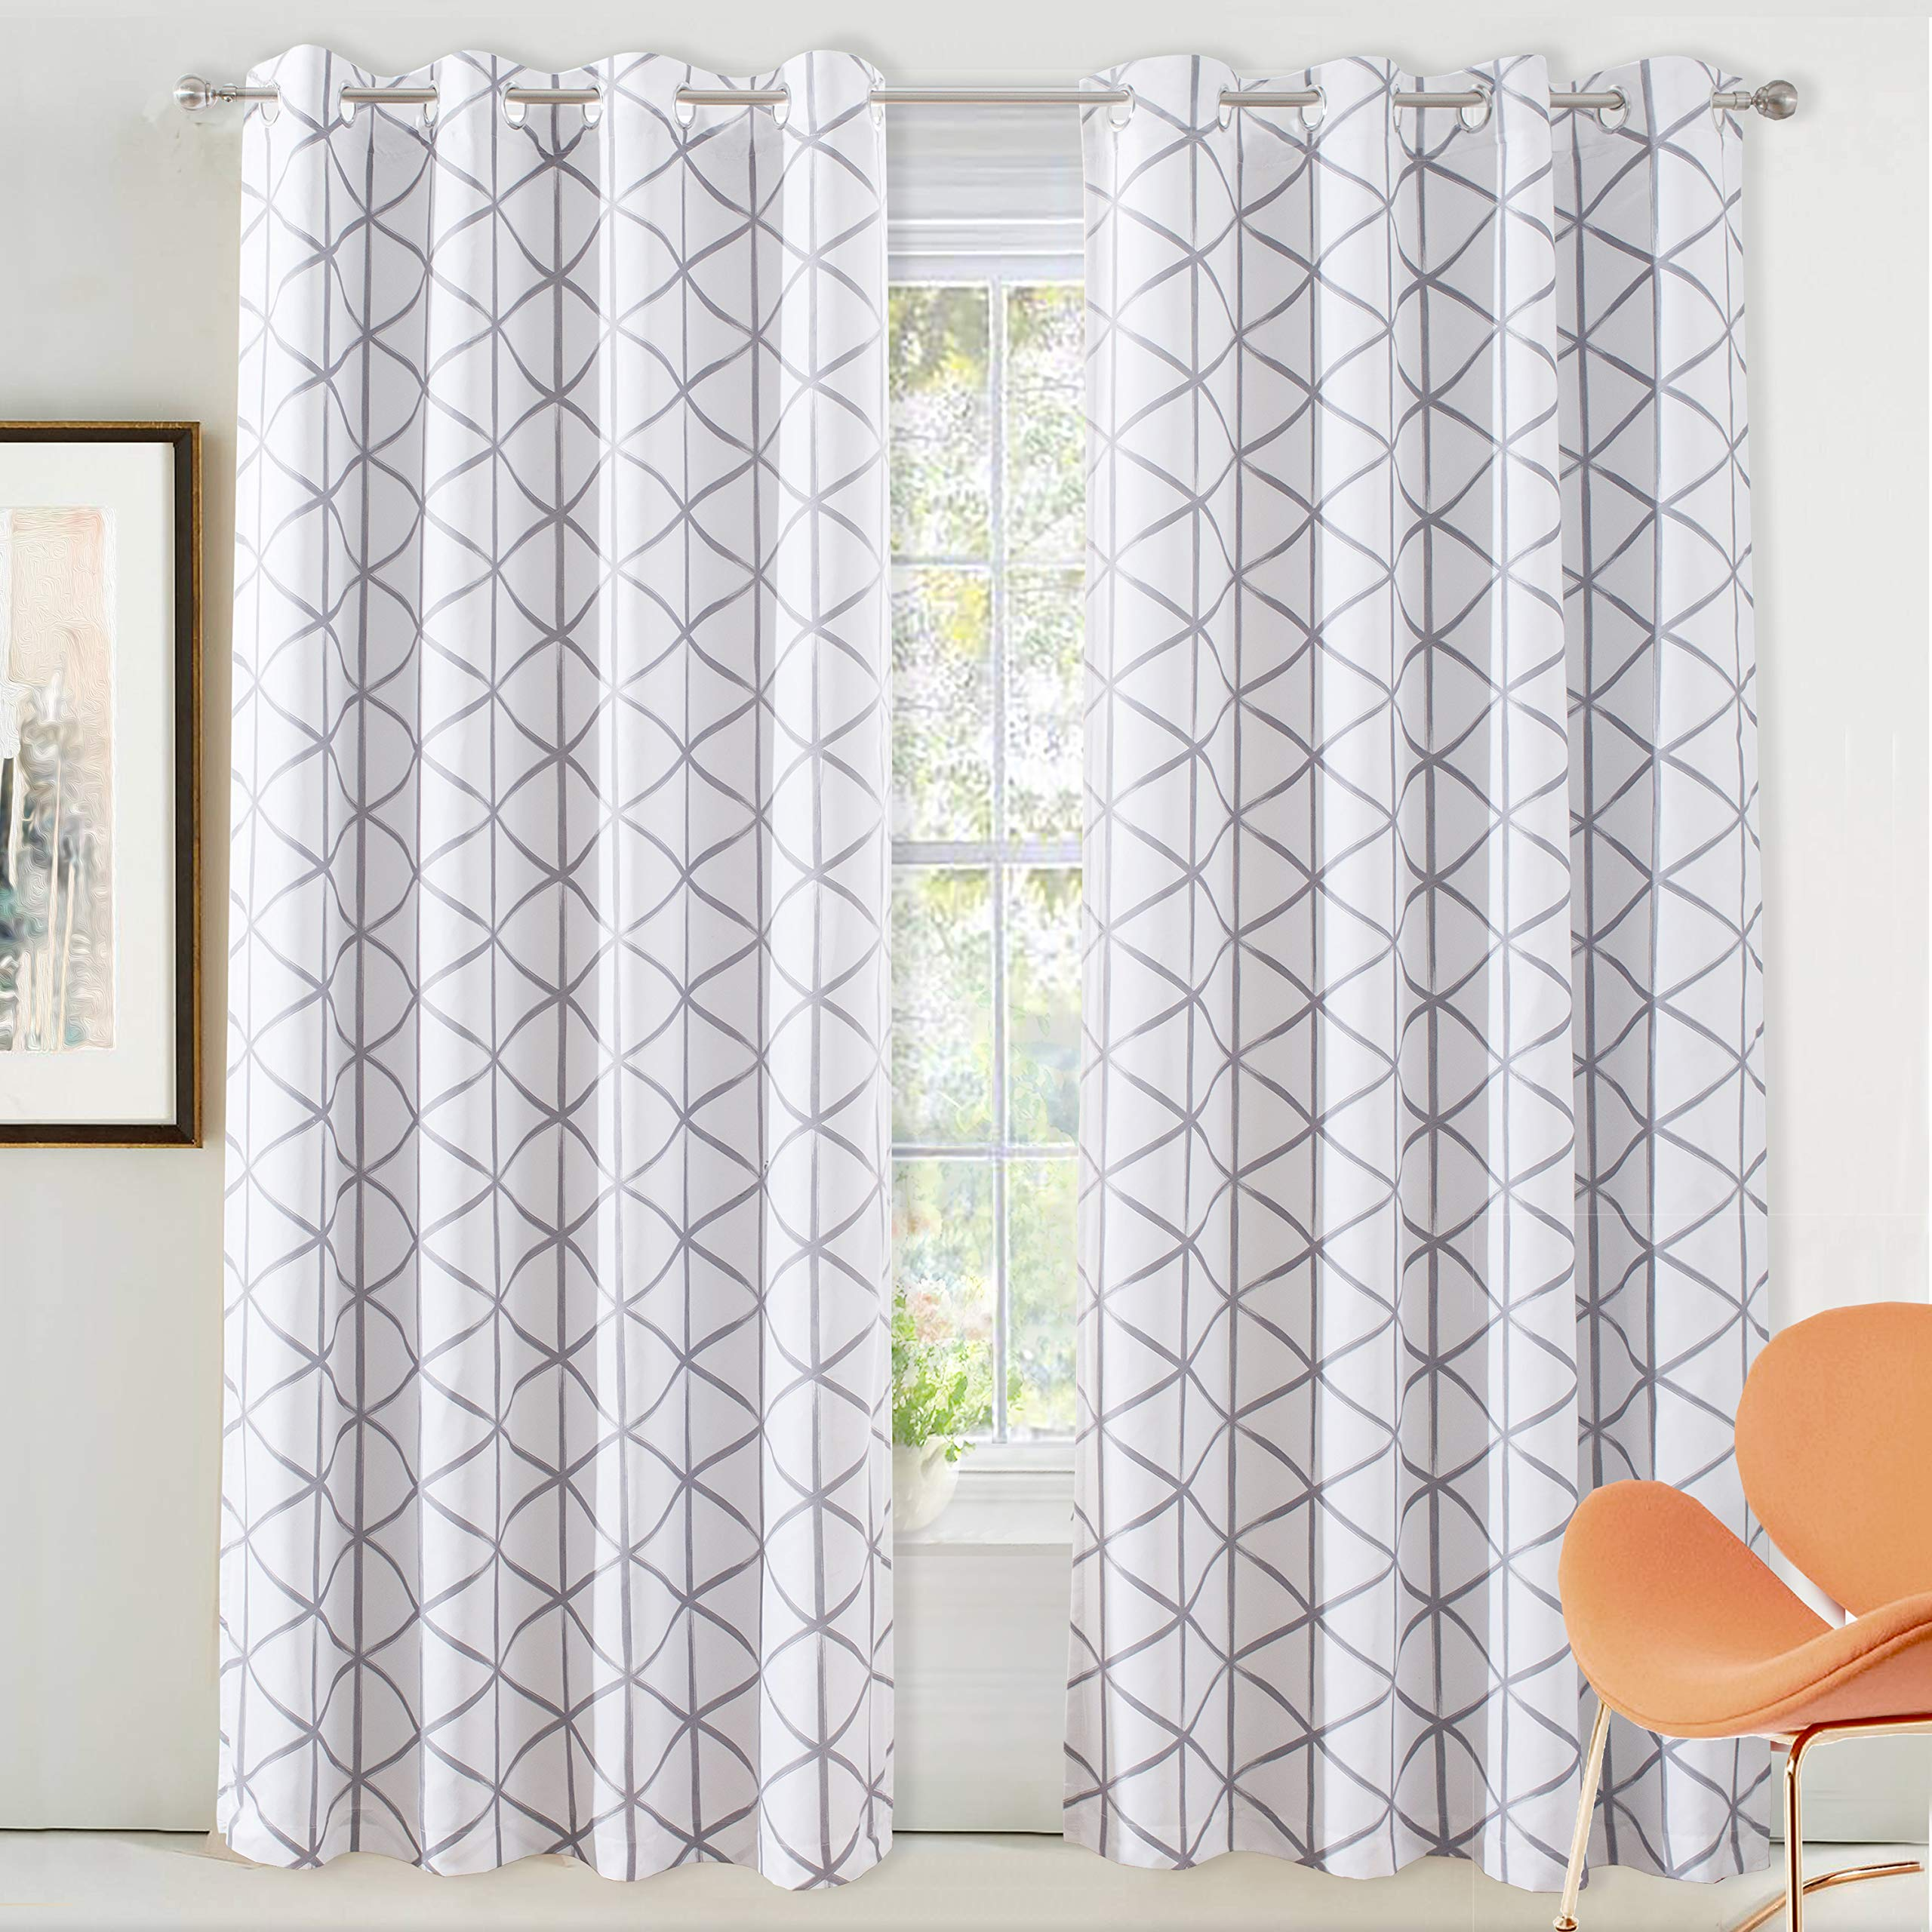 DriftAway Raymond Geometric Triangle Trellis Pattern Lined Thermal Insulated Blackout Grommet Energy Saving Window Curtains 2 Layers 2 Panels Each 52 Inch by 84 Inch Soft White and Gray by DriftAway